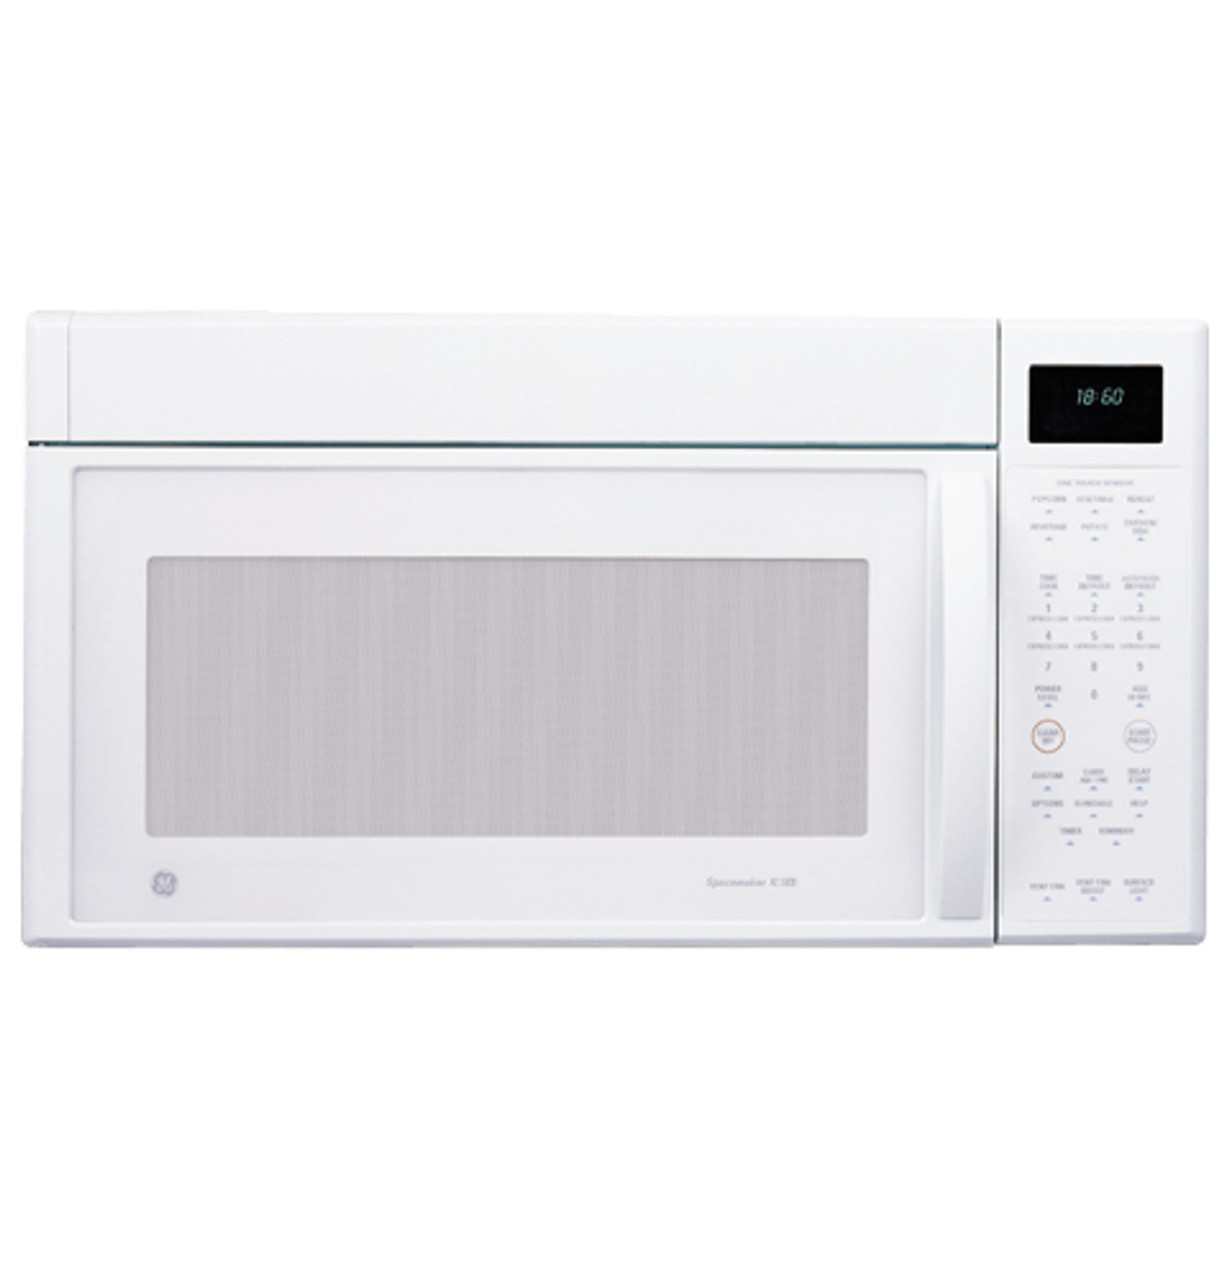 ge profile spacemaker xl1800 microwave oven with outside venting 1100 watts jvm1860wf